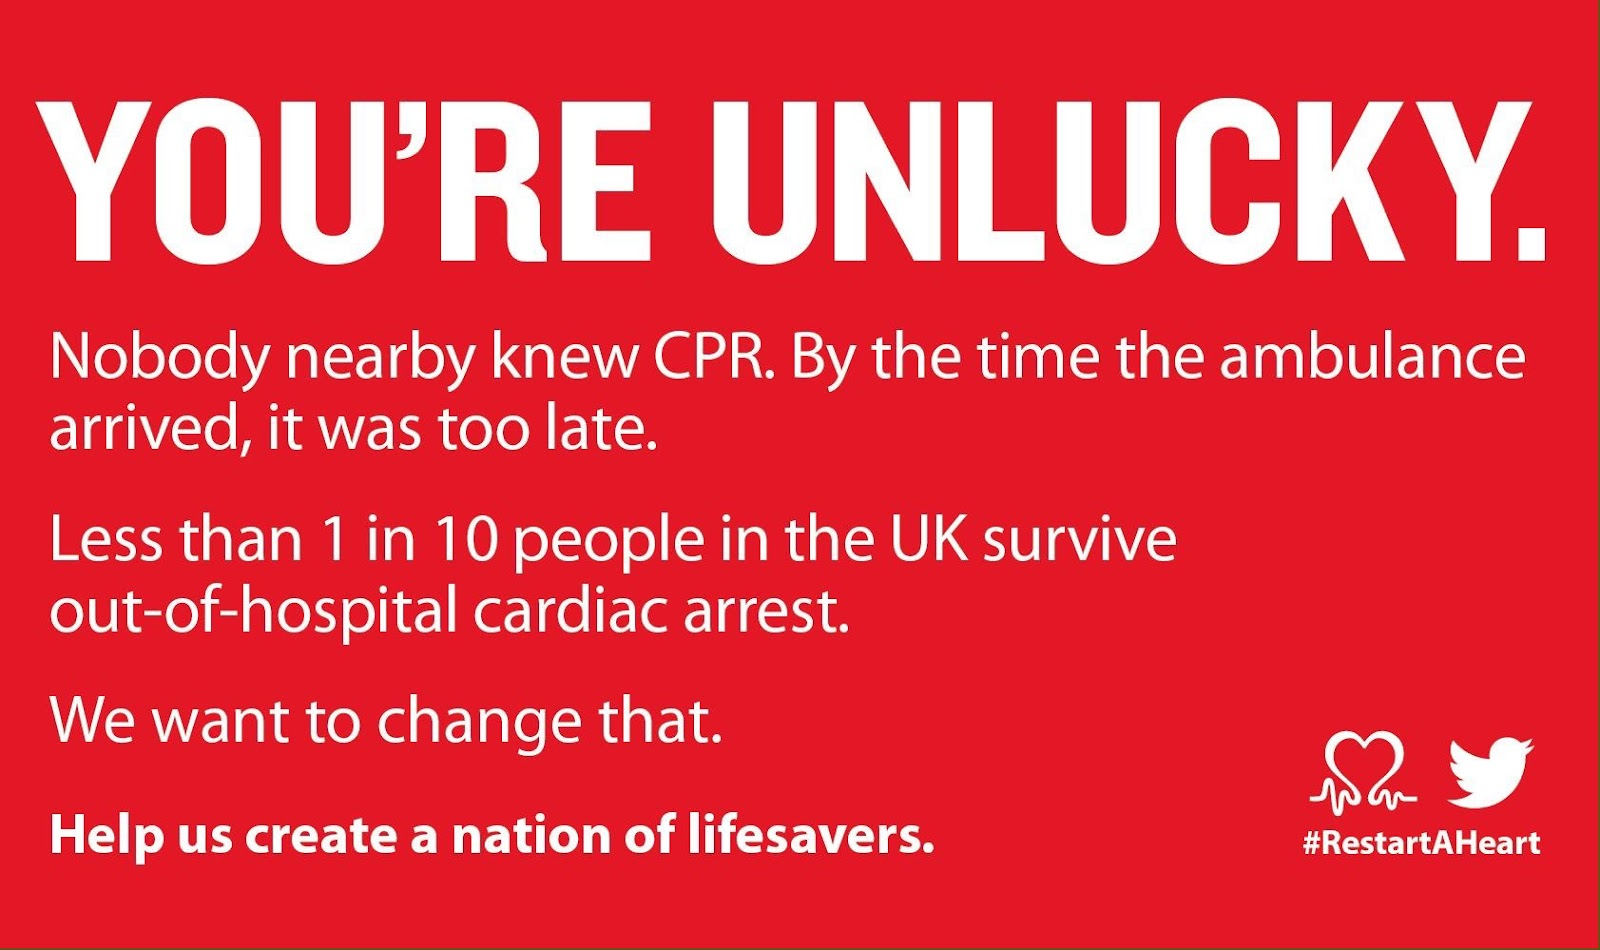 The BHF campaign